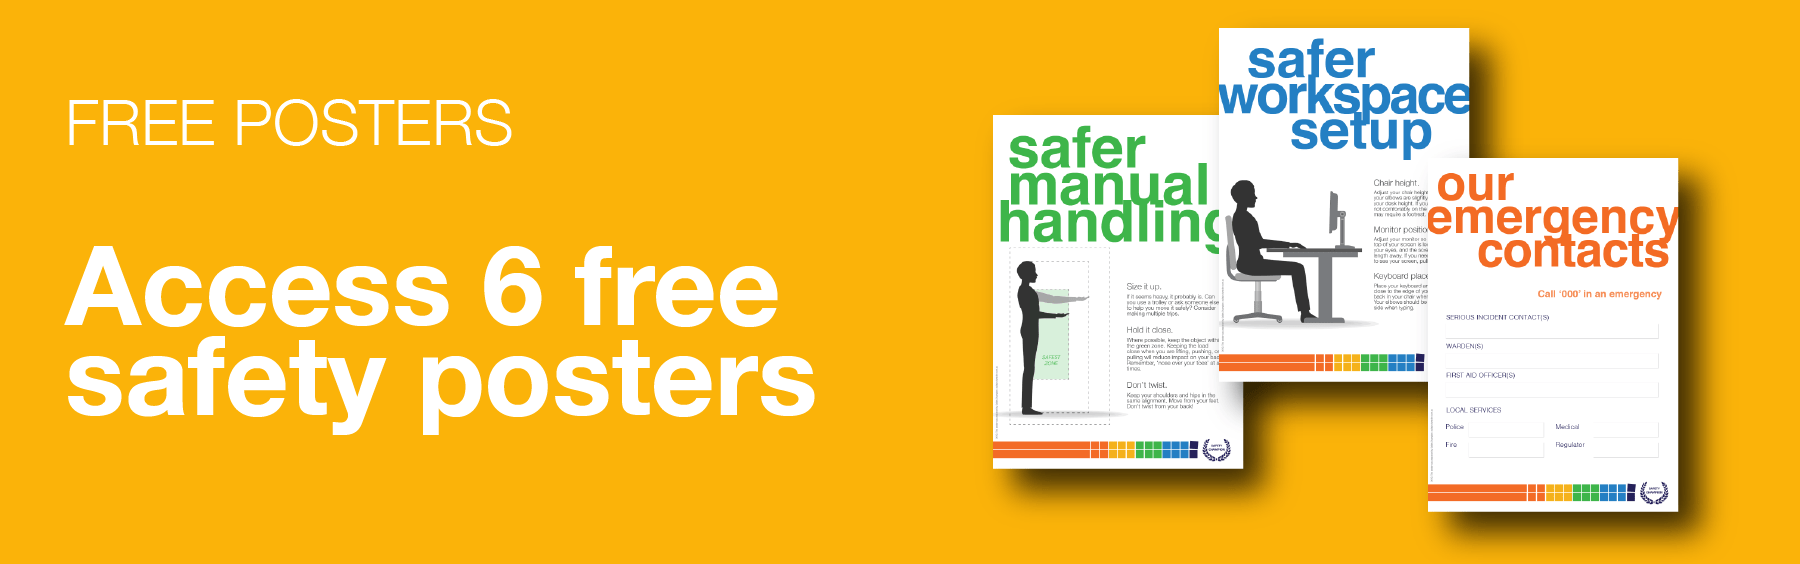 Safety-Champion-free-safety-posters-L